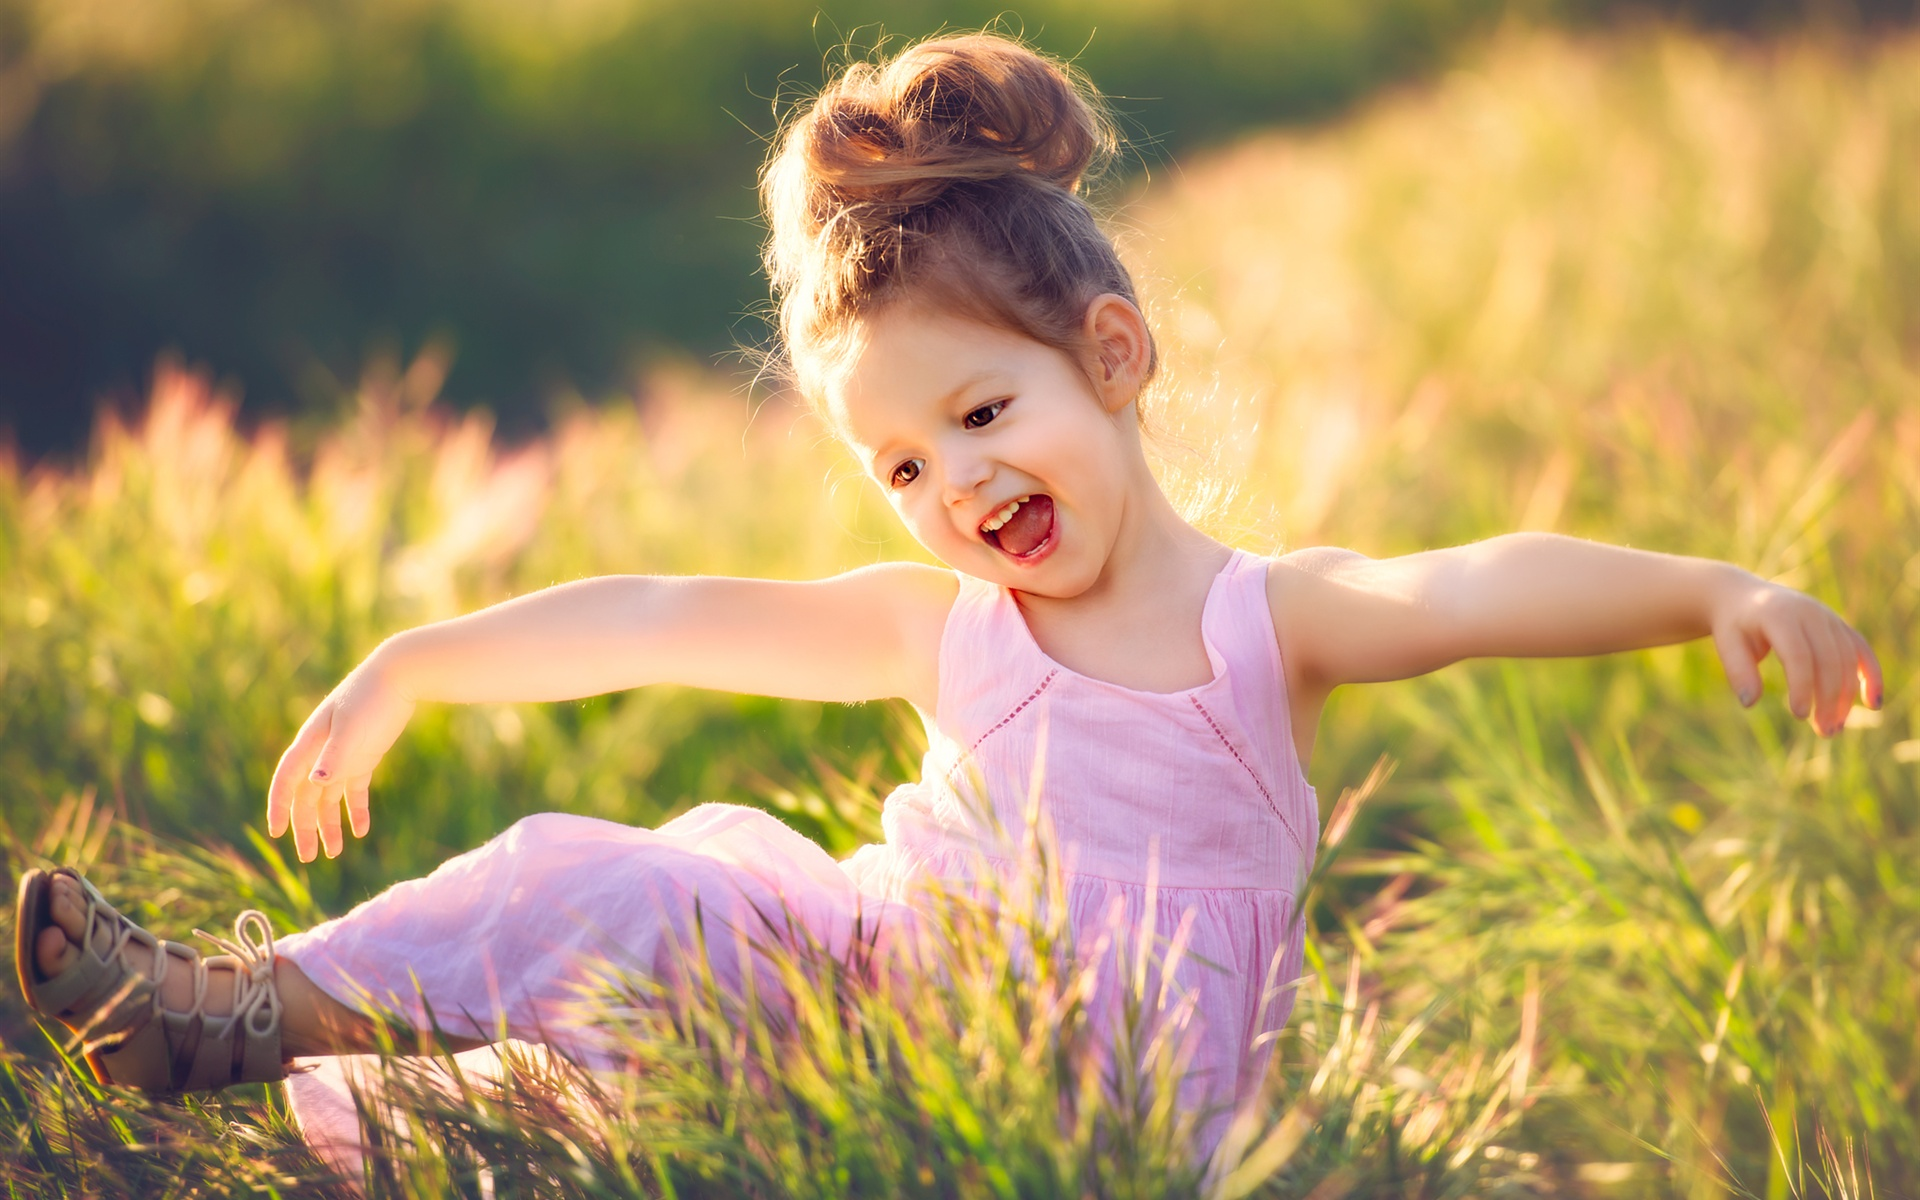 Happy-child-girl-grass-summer_1920x1200.